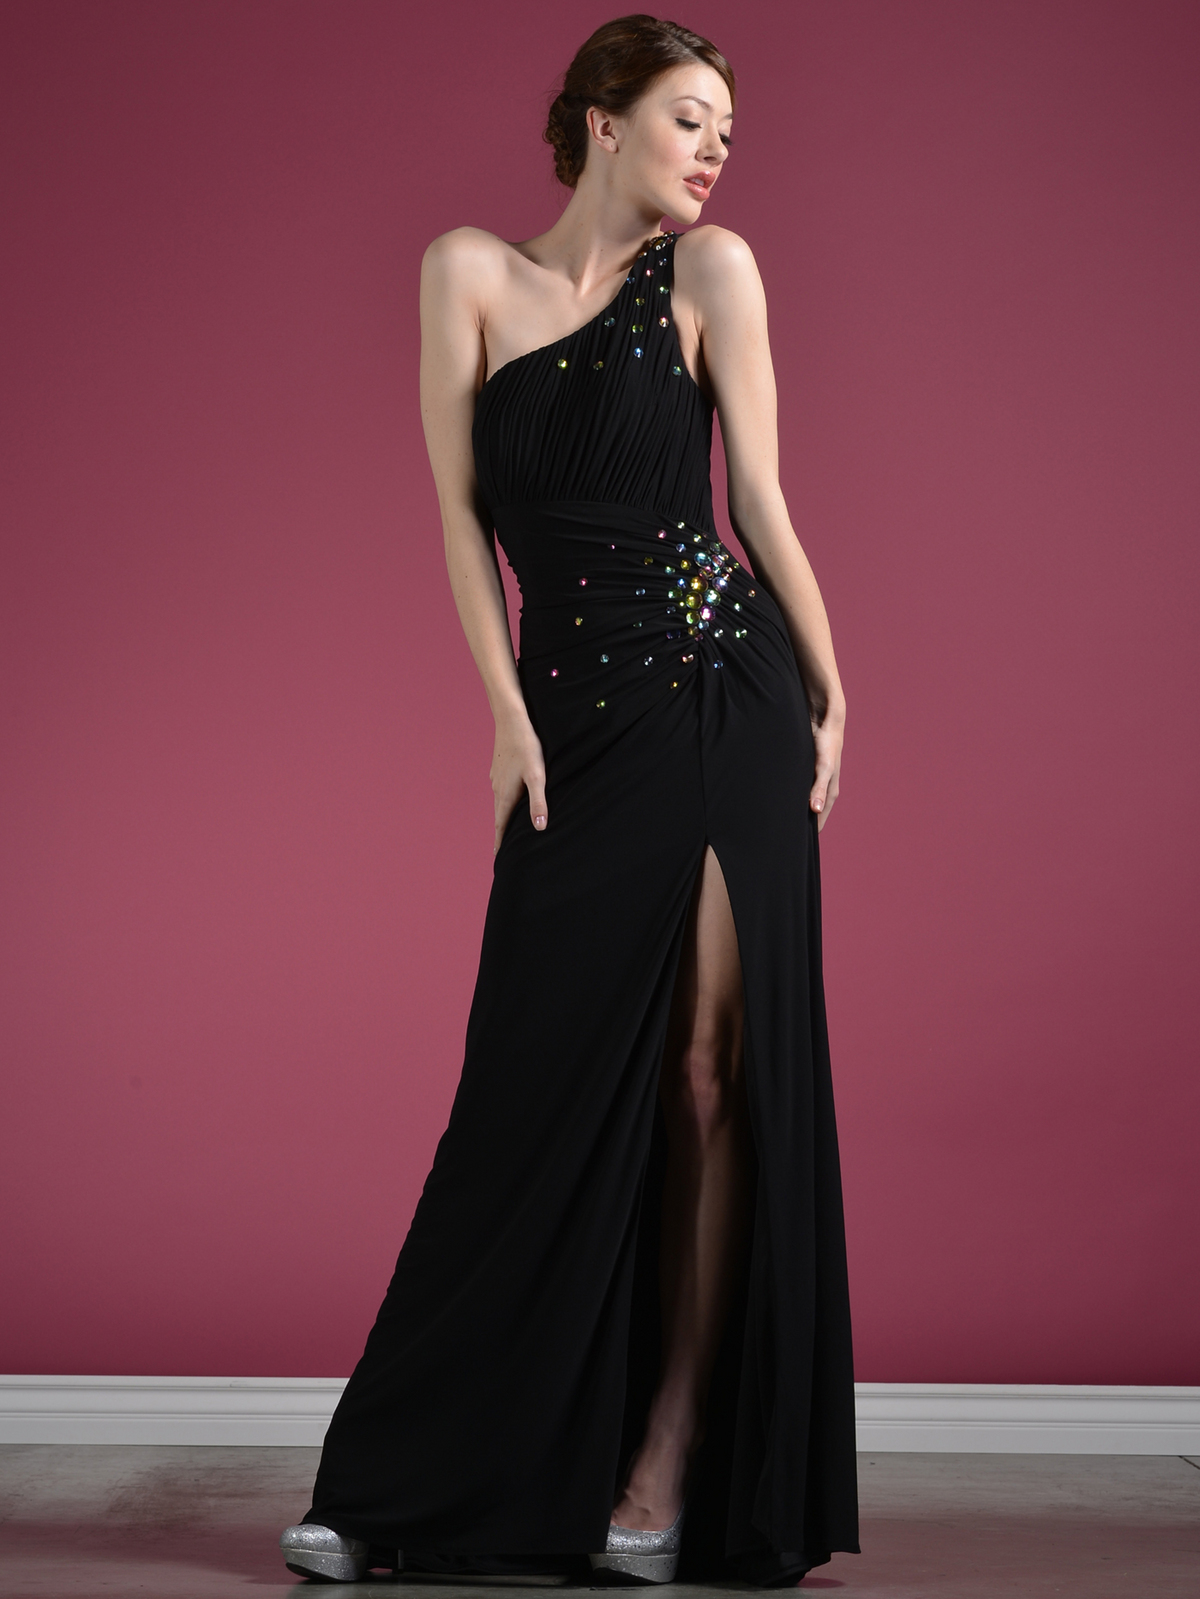 One Shoulder Prom Dresses Dressedupgirl Com